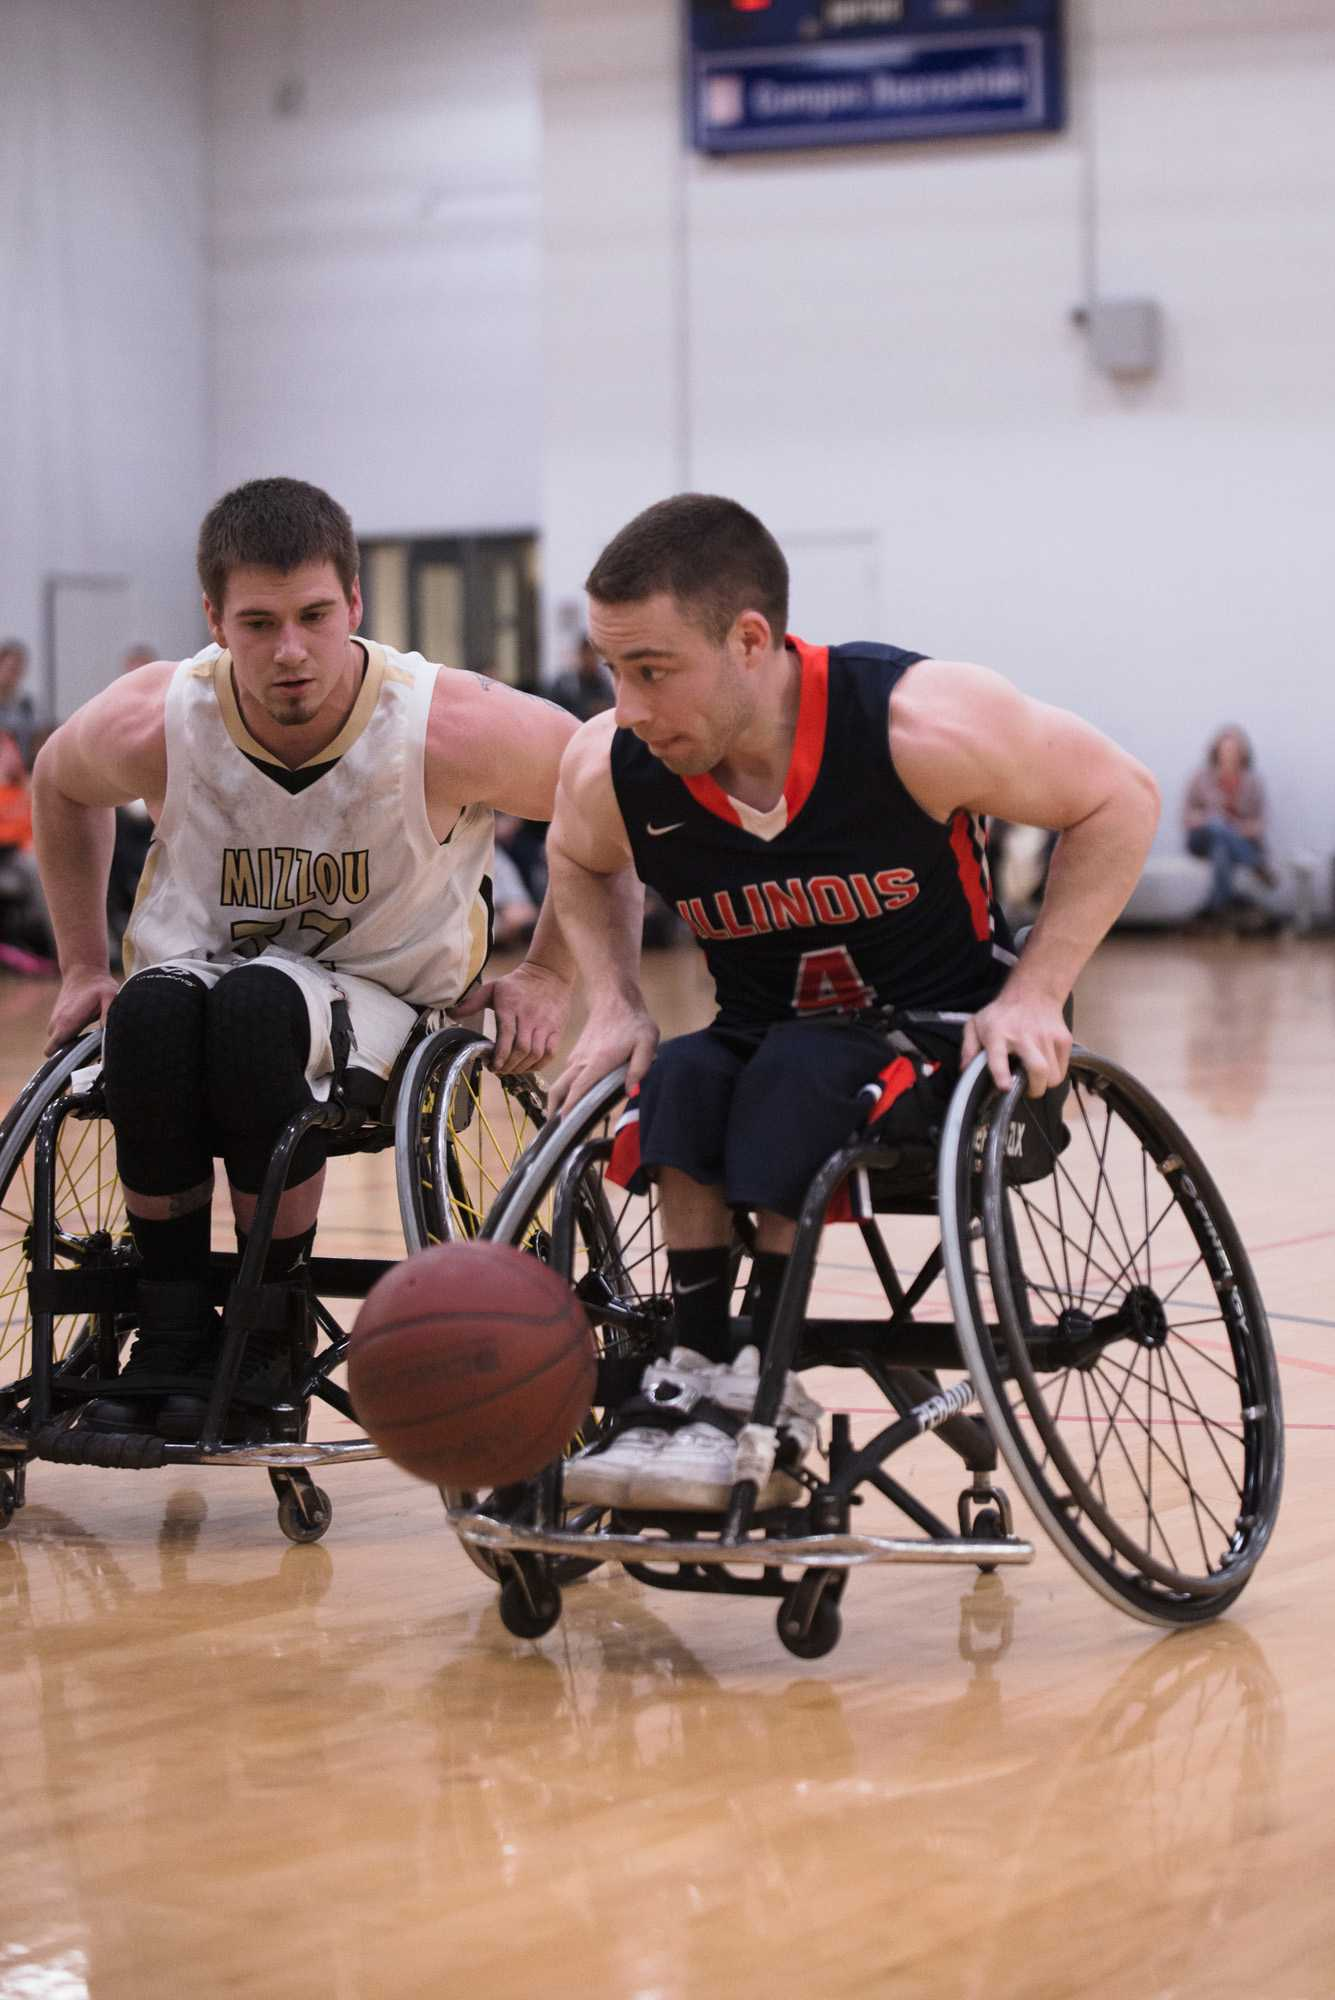 Illinois+men%E2%80%99s+wheelchair+basketball+coach+makes+adjustments+in+hopes+of+a+run+at+nationals.